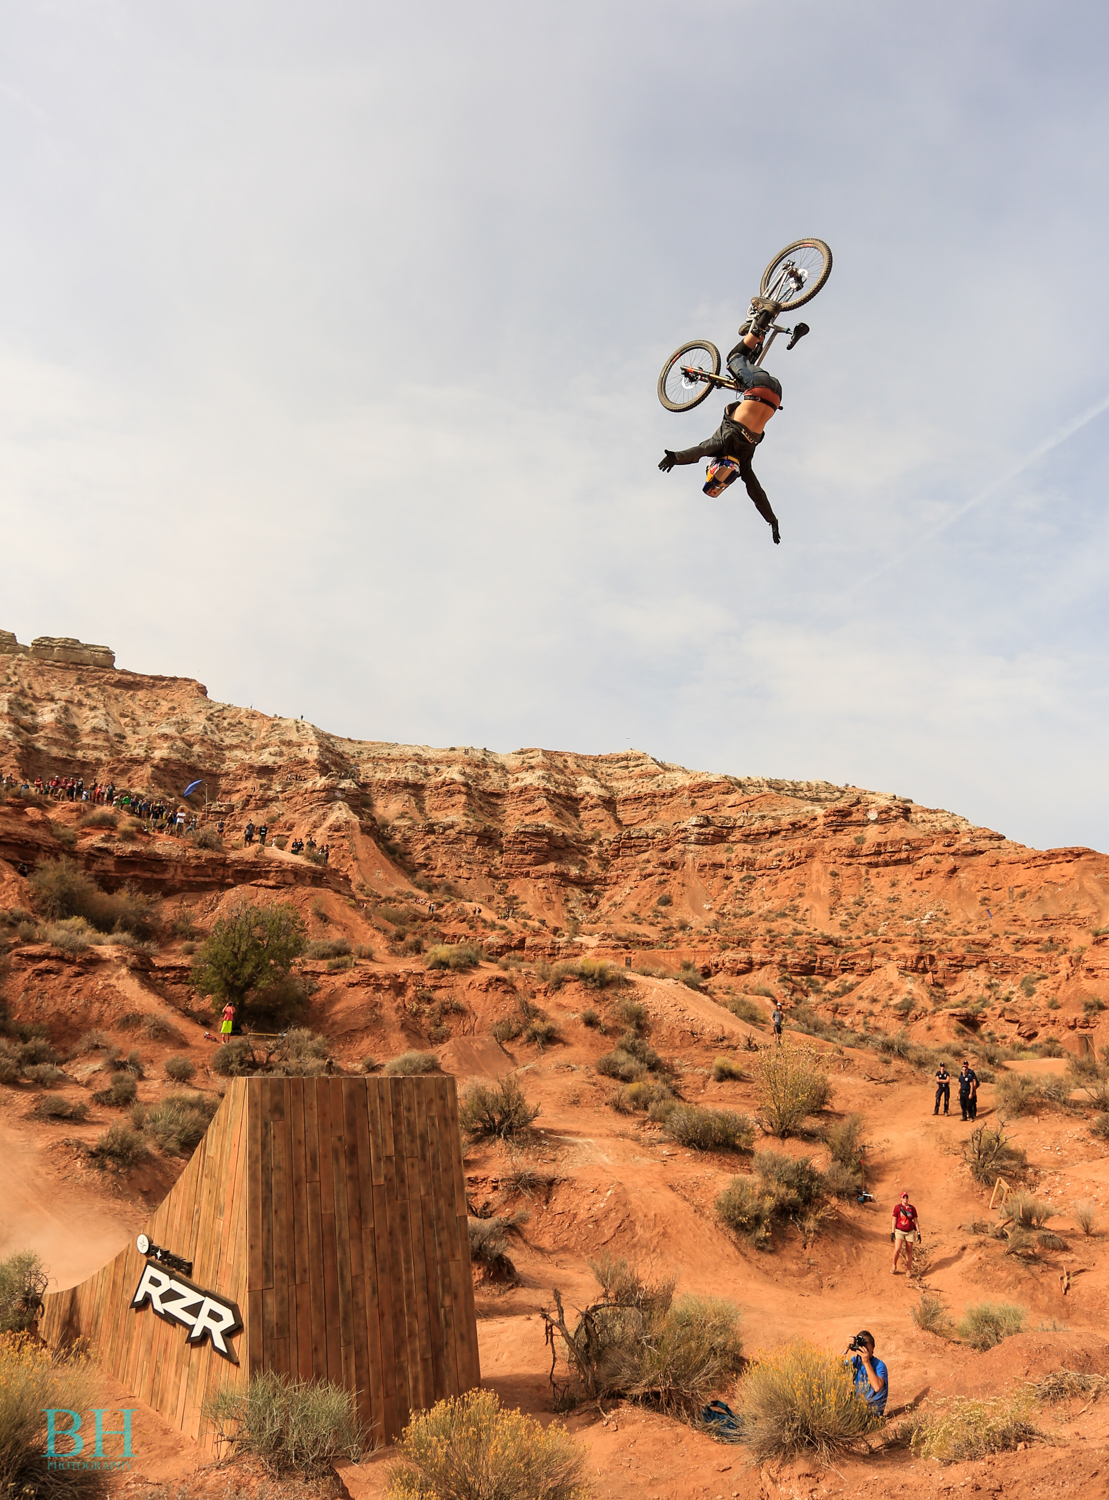 Thomas Genon, on the RZR gap which was used for the biggest tricks including a double backflip and loads of other huge flips